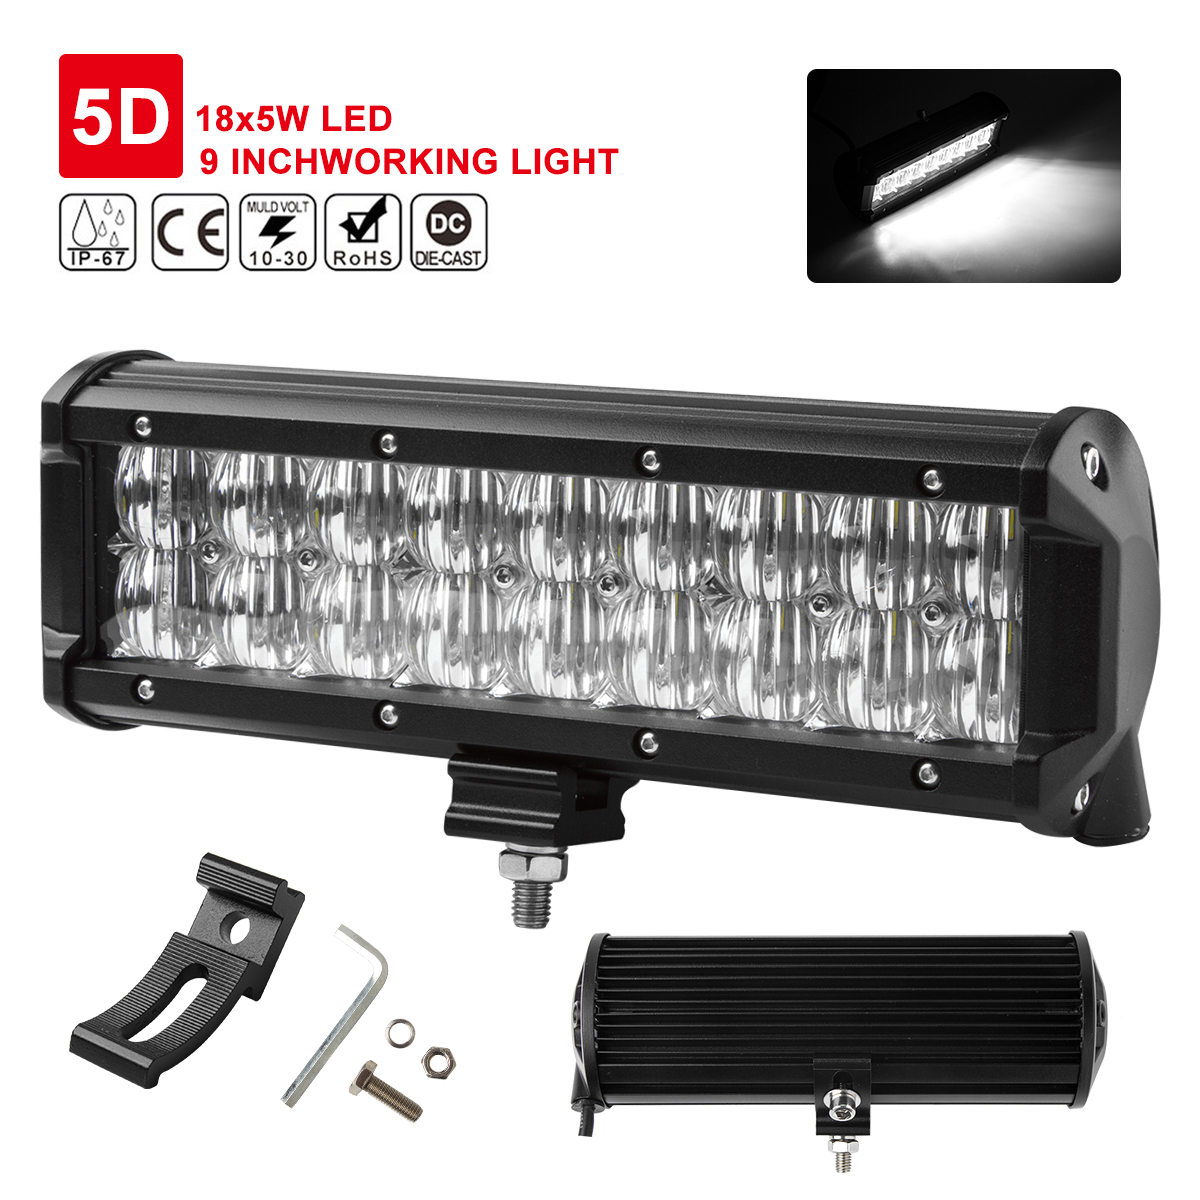 9inch 90W 5D Lens LED Light Bar Flood Spot Work Lamp SUV ATV 4WD work light Stright Light for Car ATV/UTV/Golf cart lighting image